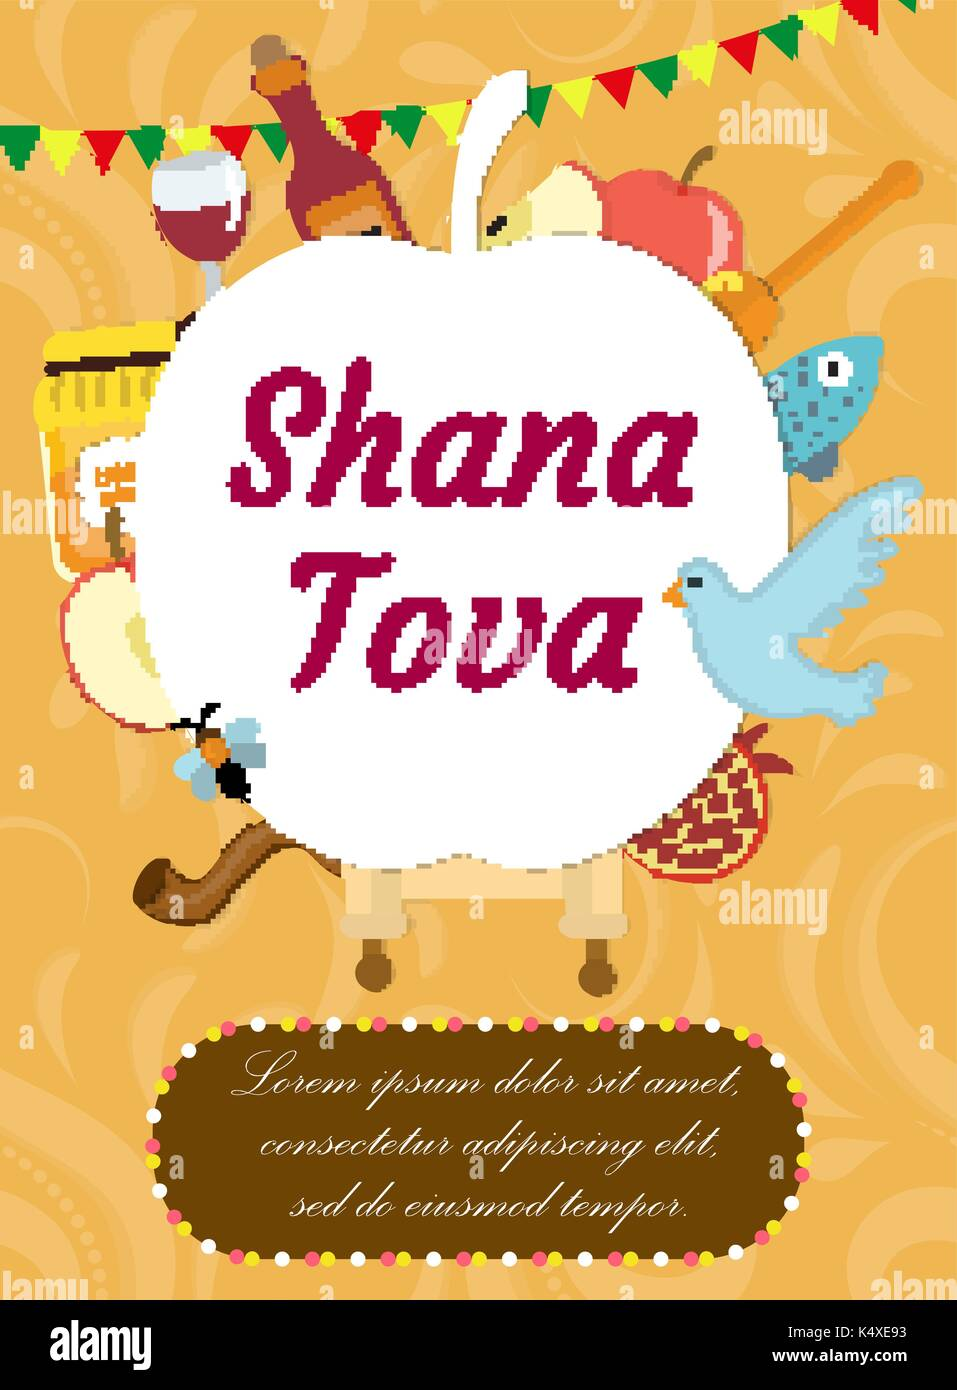 Jewish new year greeting card stock photos jewish new year rosh hashanah poster flyer invitation greeting card shana tova is a template kristyandbryce Choice Image